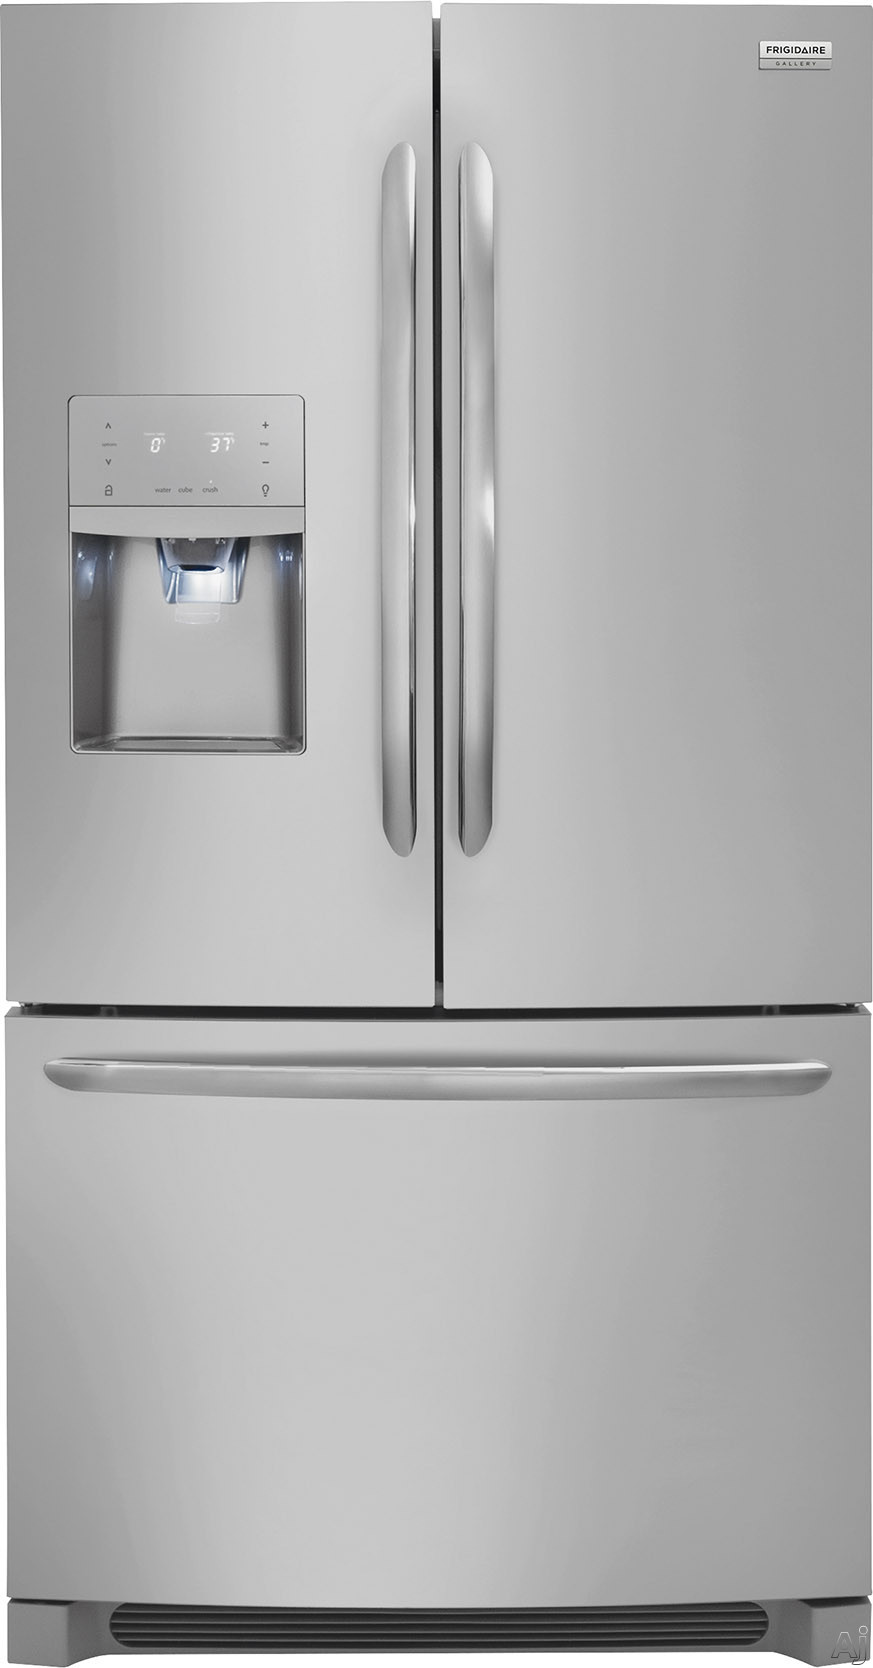 "Gallery 4-Piece Stainless Steel Kitchen Package with FGHB2868TF 36"""" French Door Refrigerator  FGGF3036TF 30"""" Freestanding Gas Range  FGID2466QF 24"""" Fully"" 851466"